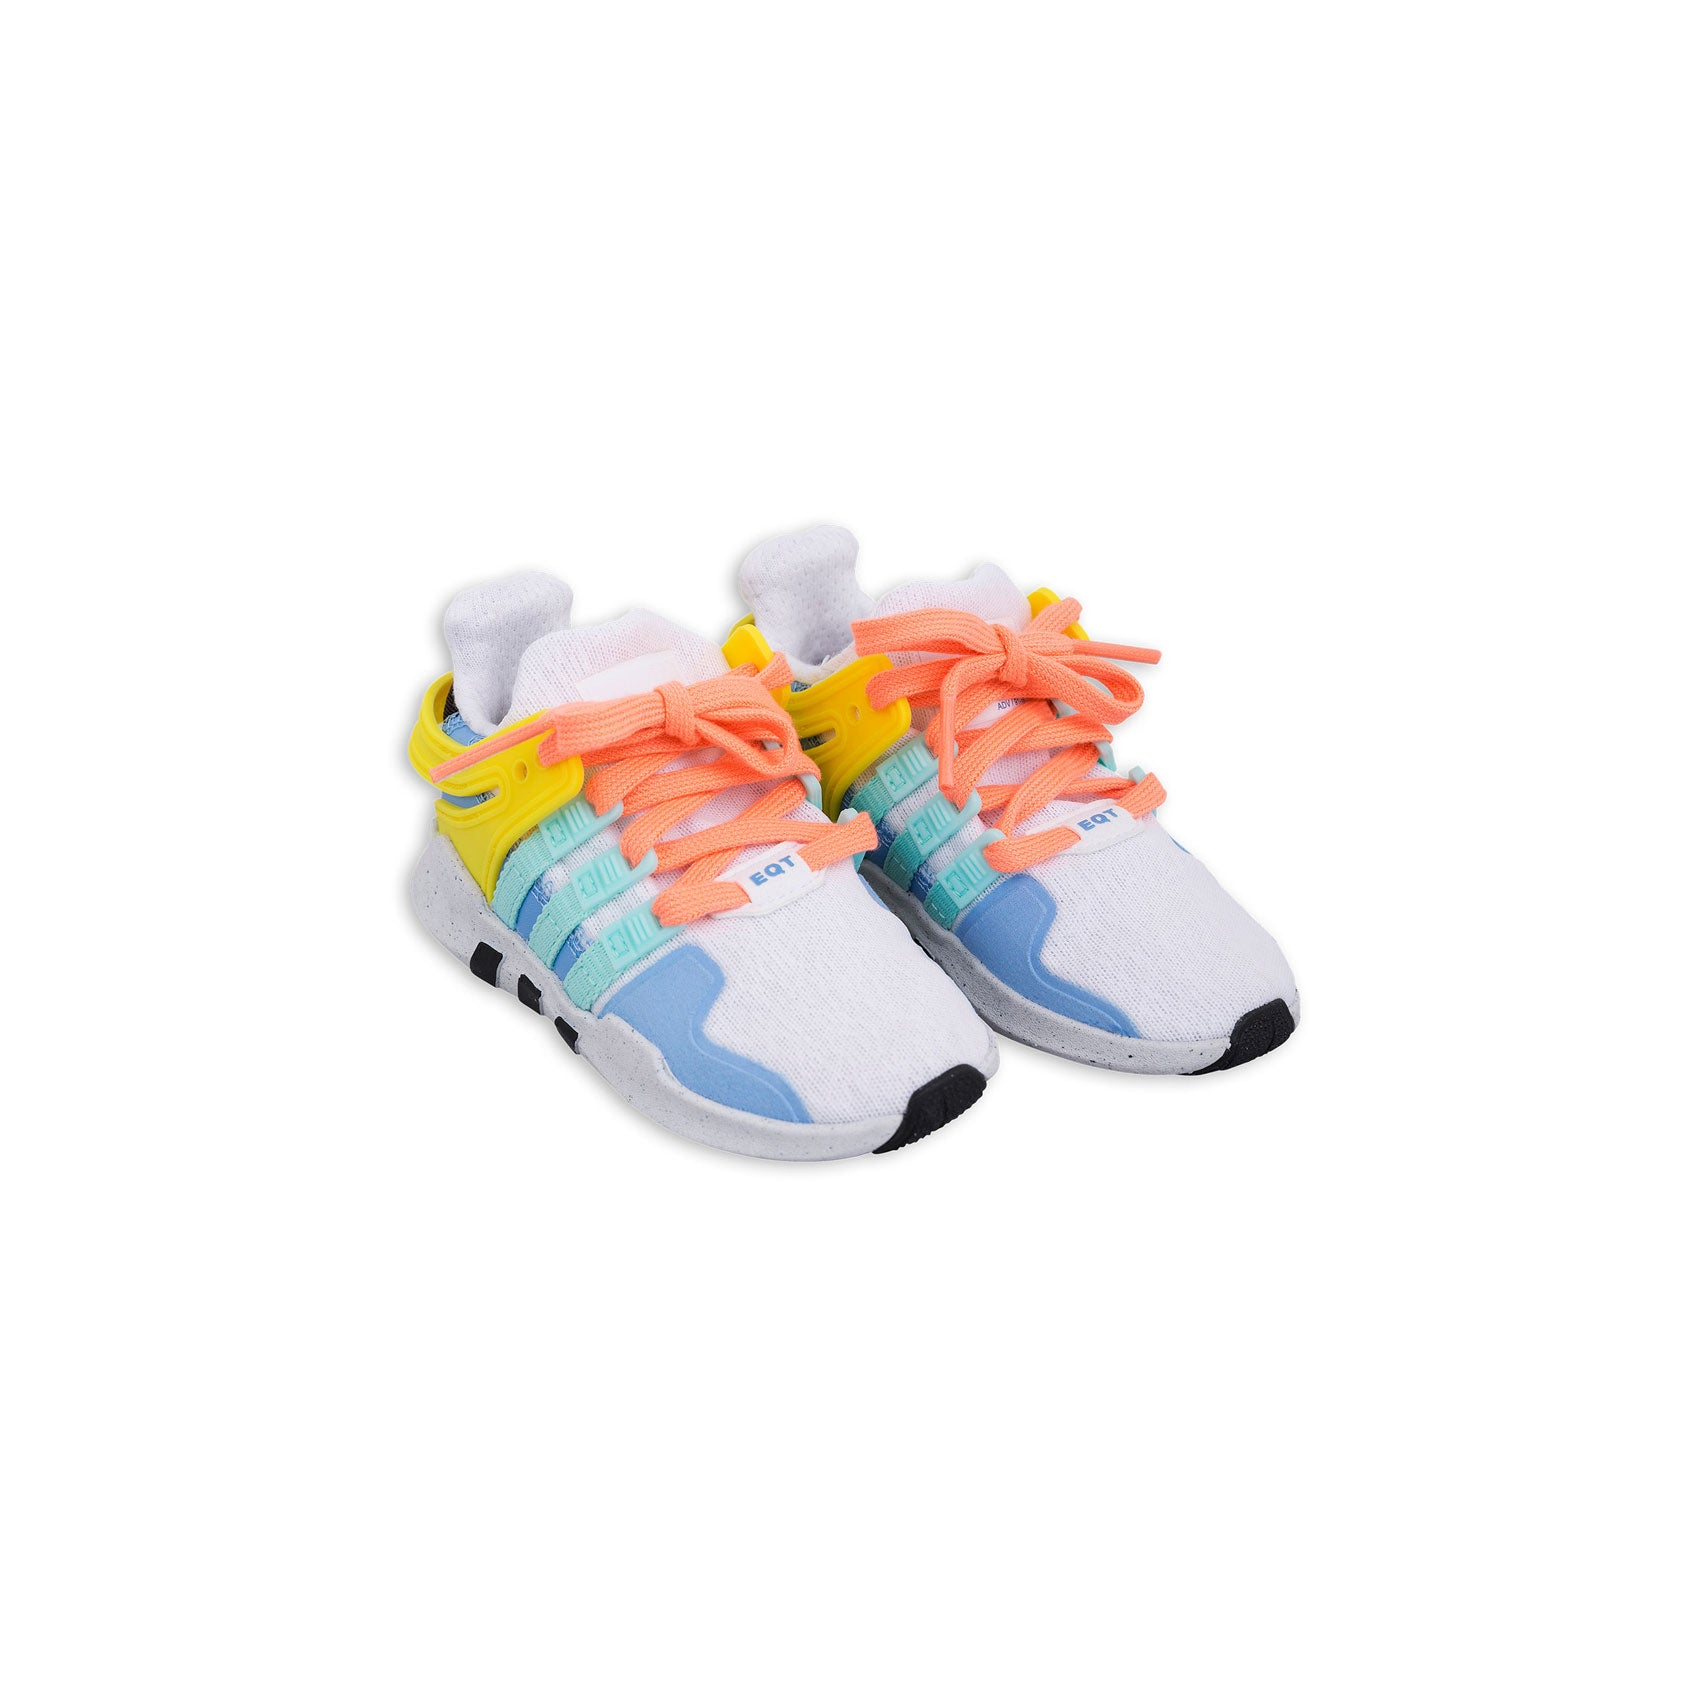 best authentic a0121 4276a Mini Rodini Adidas White Rainbow Sneakers - Ladida